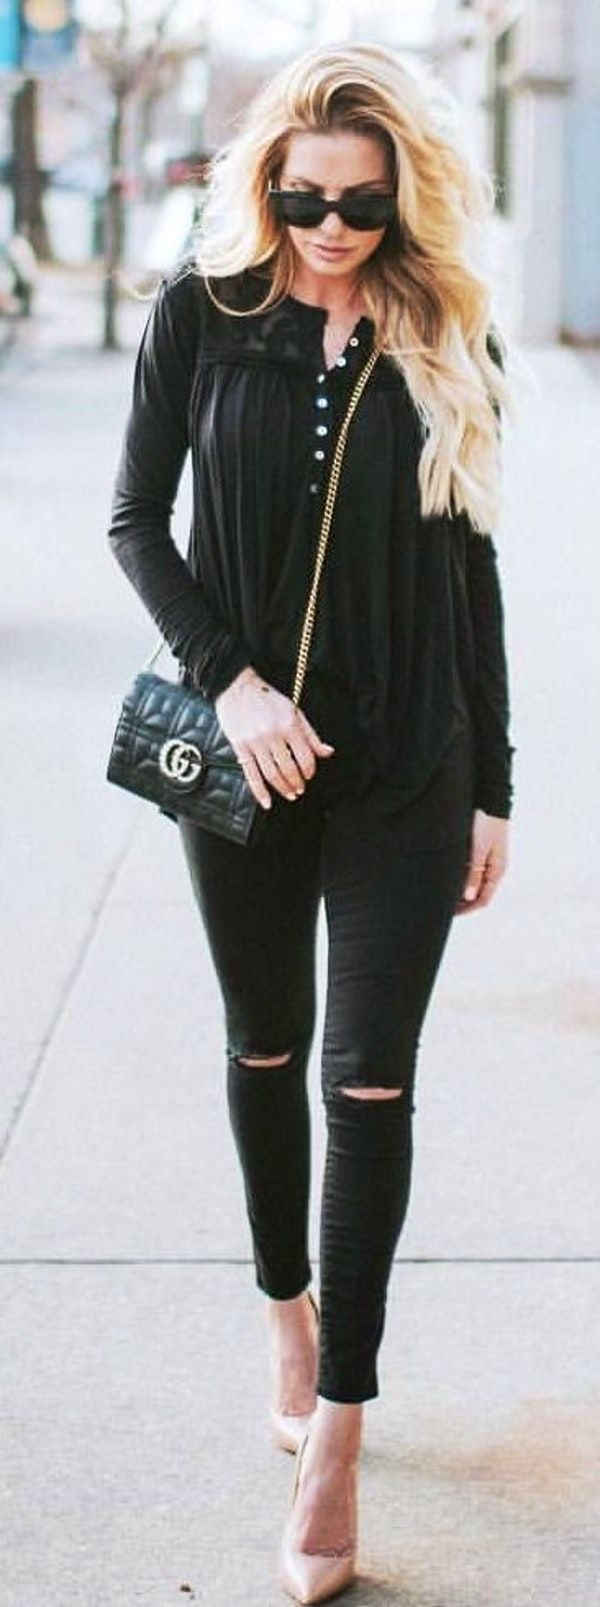 #spring #outfits woman wearing black long-sleeved shirt with black denim distressed jeans. Pic by @lyndiinthecity